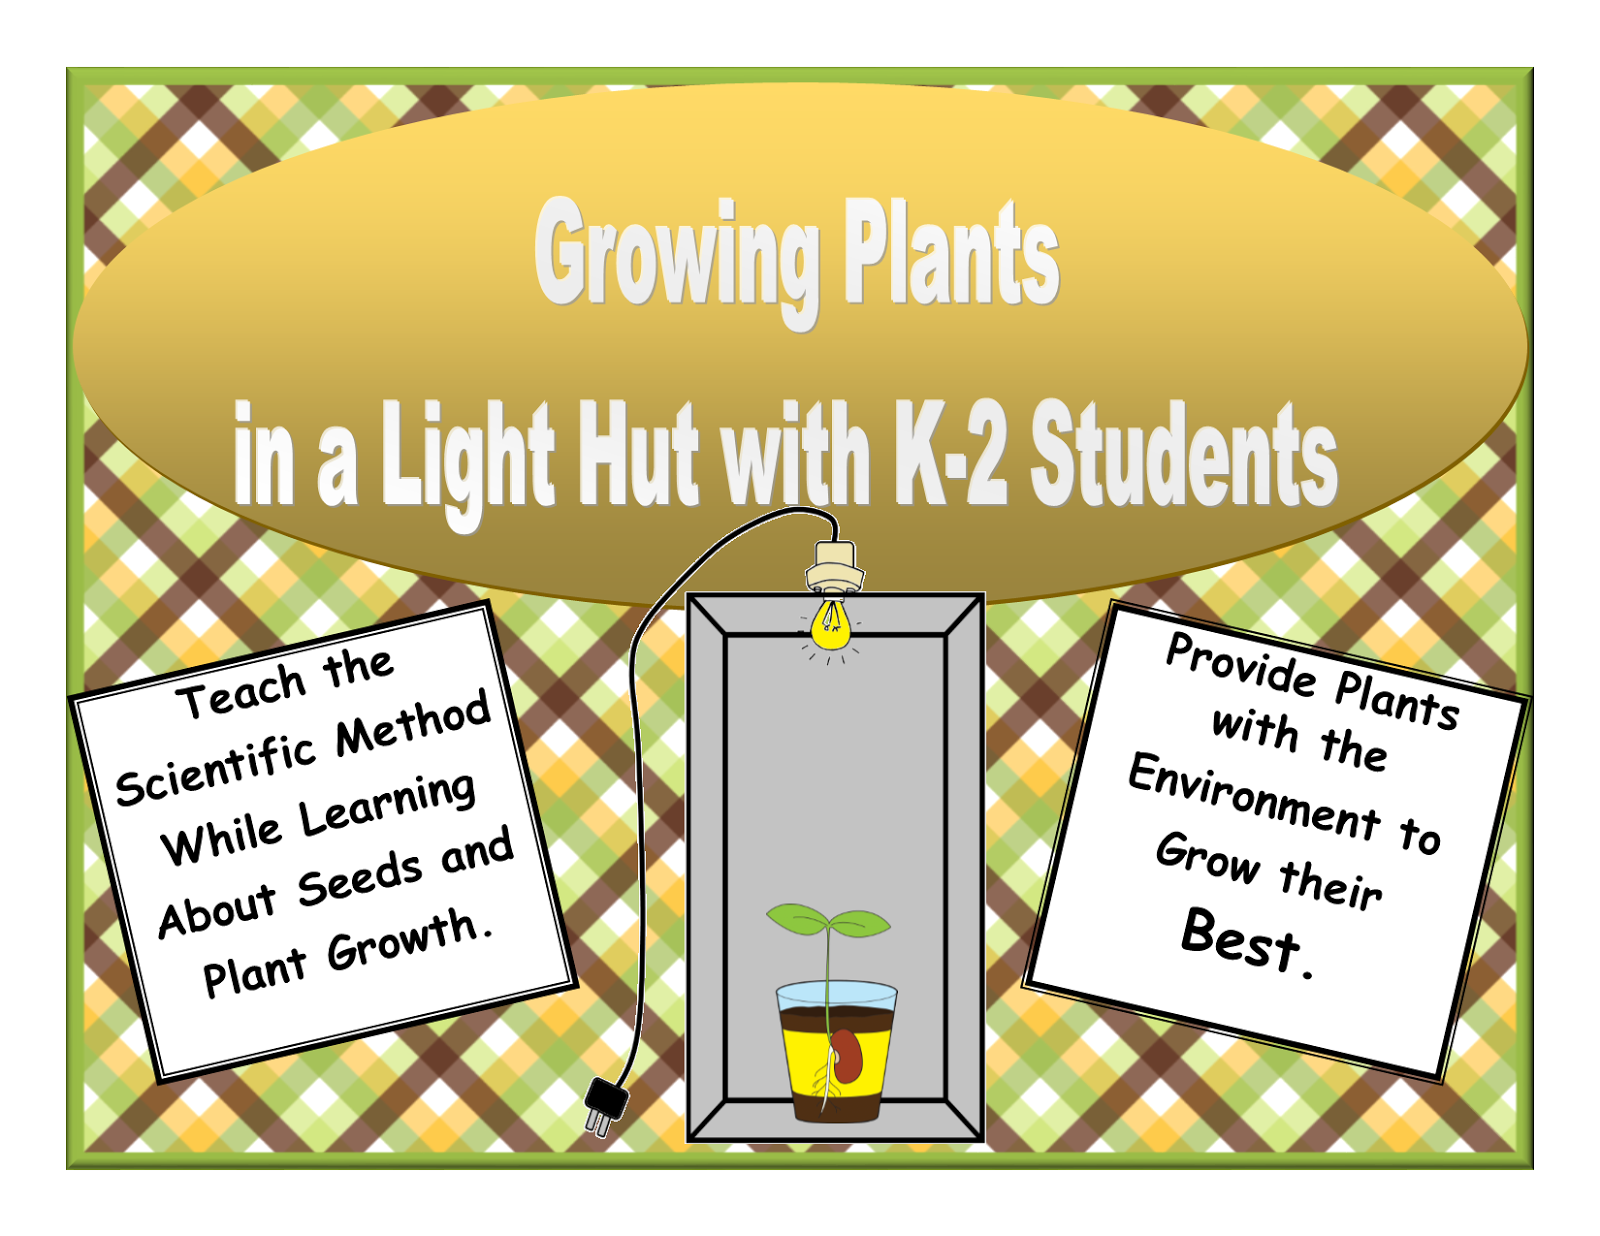 http://www.teacherspayteachers.com/Product/Growing-Plants-in-a-Light-Hut-Kindergarten-First-and-Second-Grade-Students-1588679